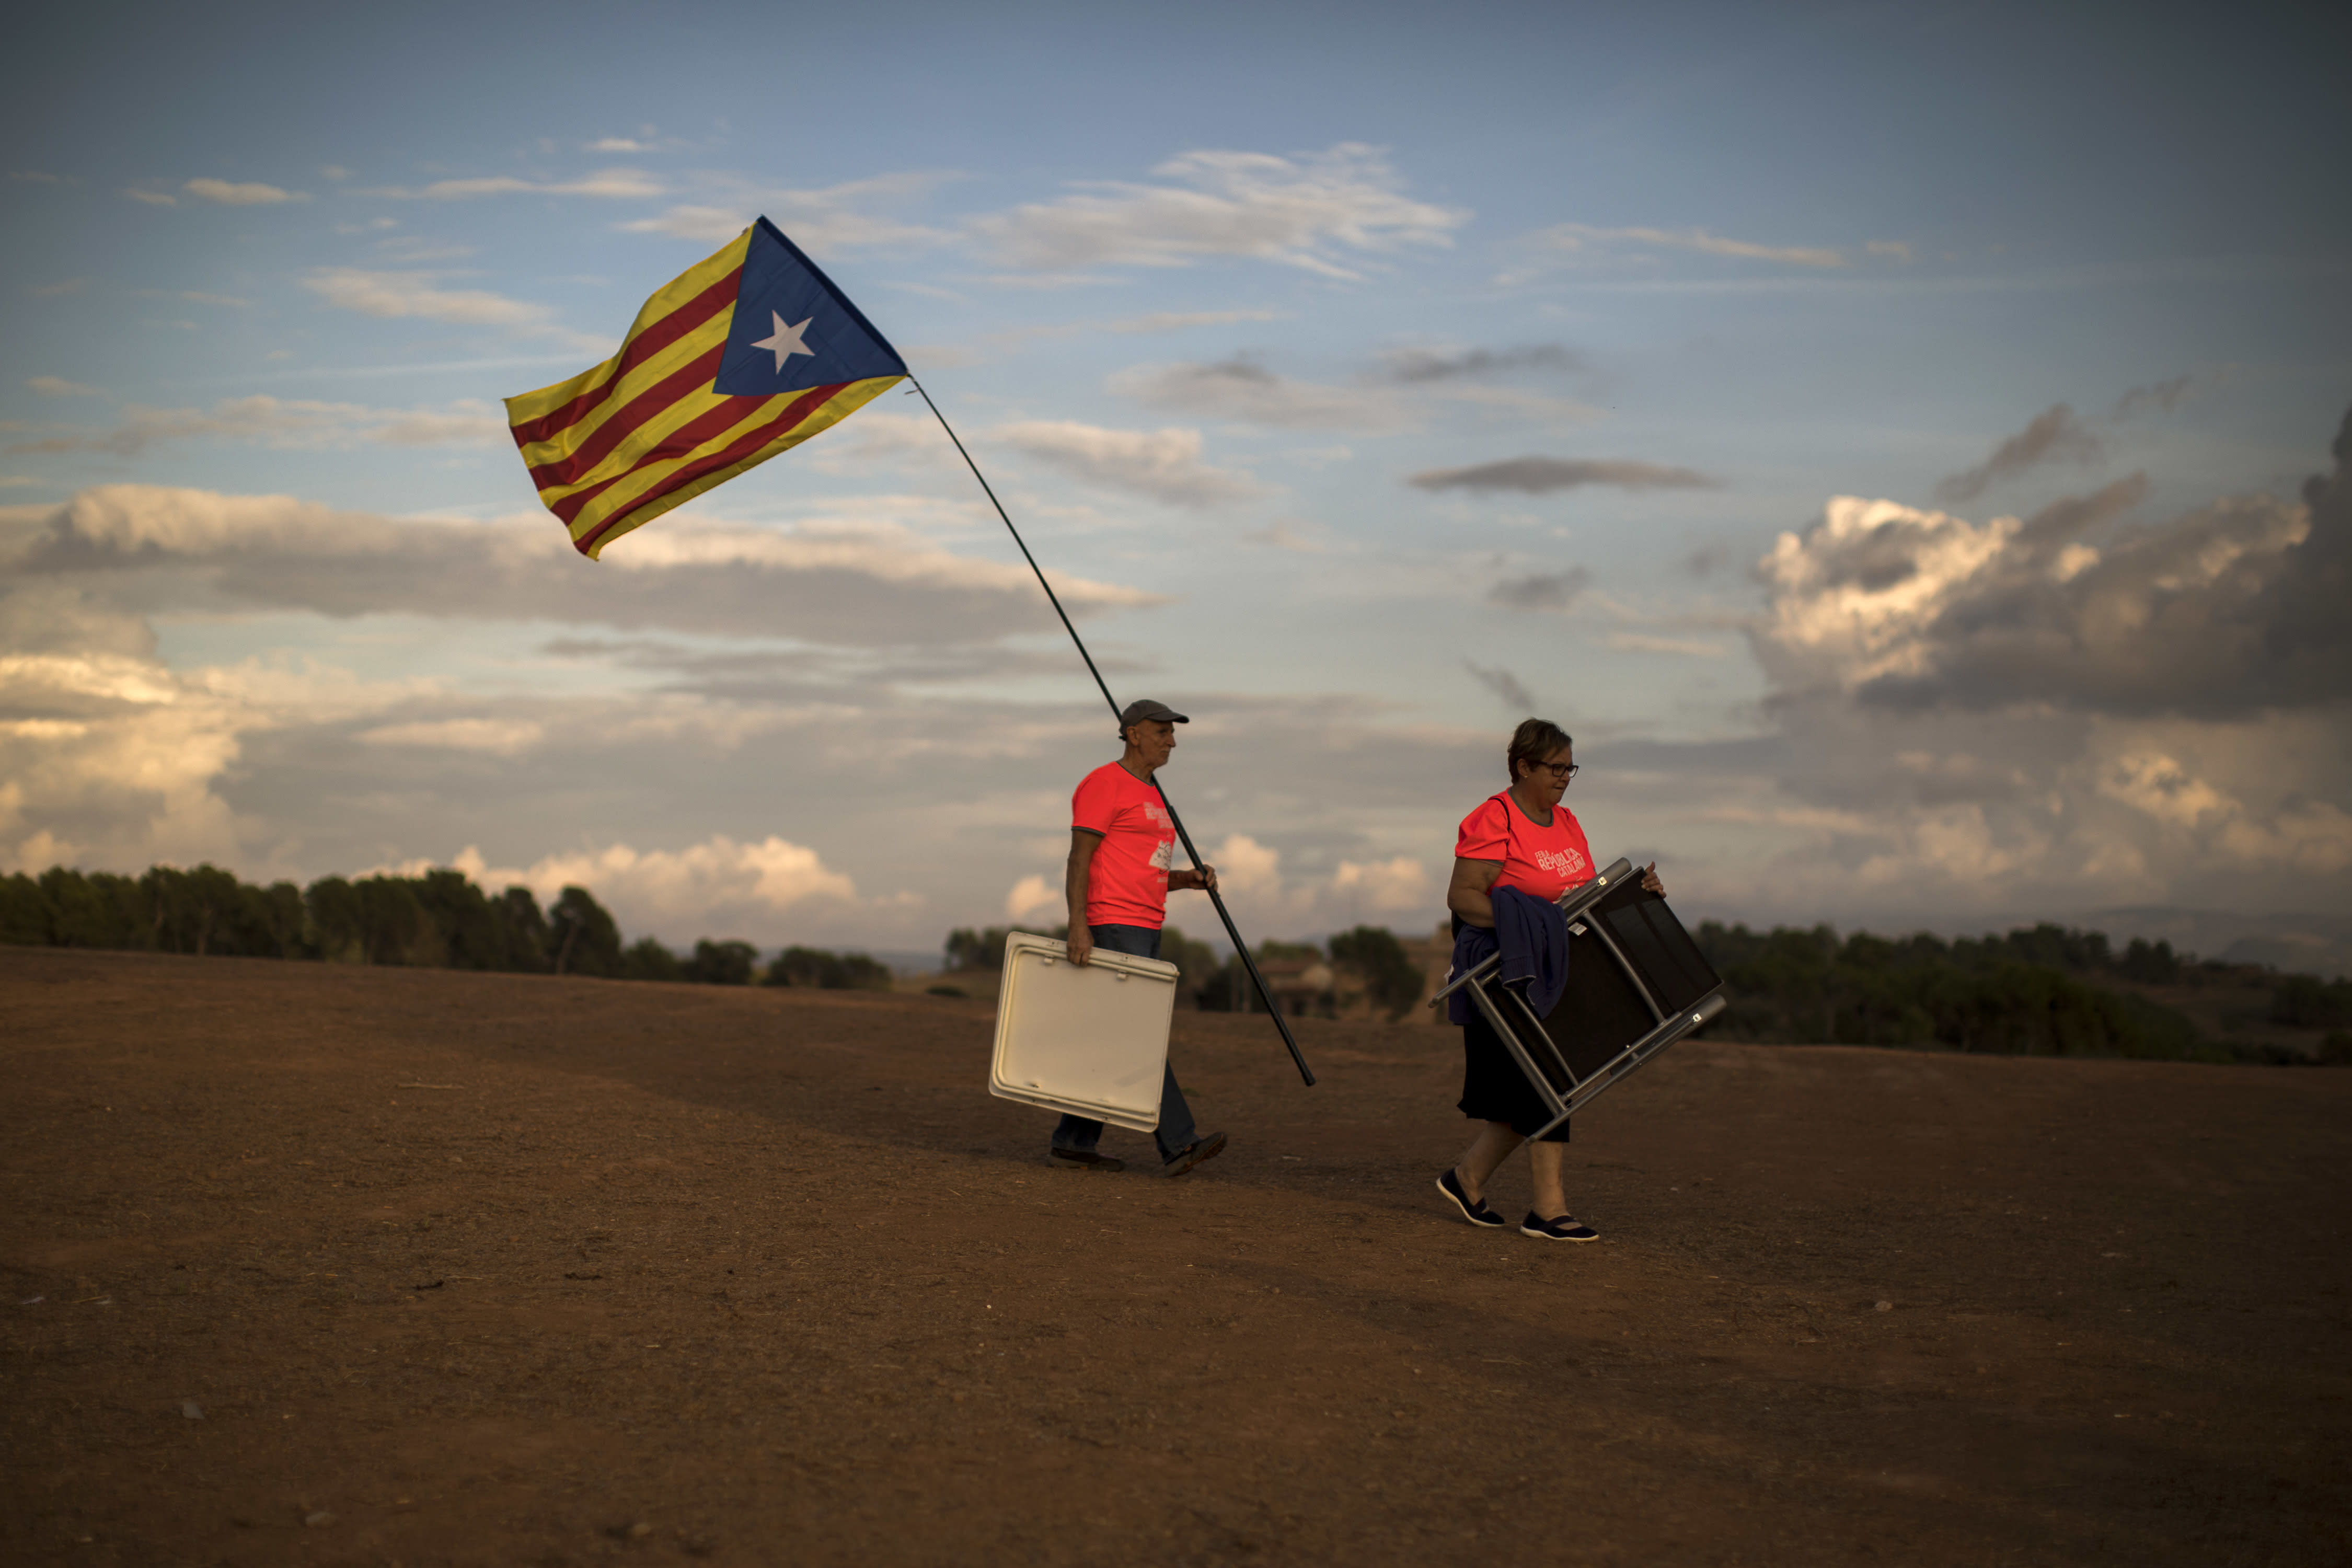 In this Tuesday, Sept. 18, 2018 photo, pro independence people carry chairs and a picnic basket, as they arrive to a field overlooking the Lledoners prison in Sant Joan de Vilatorrada, about 50 kilometres away from Barcelona, Spain. Every Tuesday as the sun sets on the quiet hills surrounding the Lledoners prison in rural Catalonia, dozens of people sit in a field overlooking the penitentiary where seven out of the nine prominent jailed separatists are awaiting trial for their involvement in an unauthorized referendum on independence held last year. (AP Photo/Emilio Morenatti)